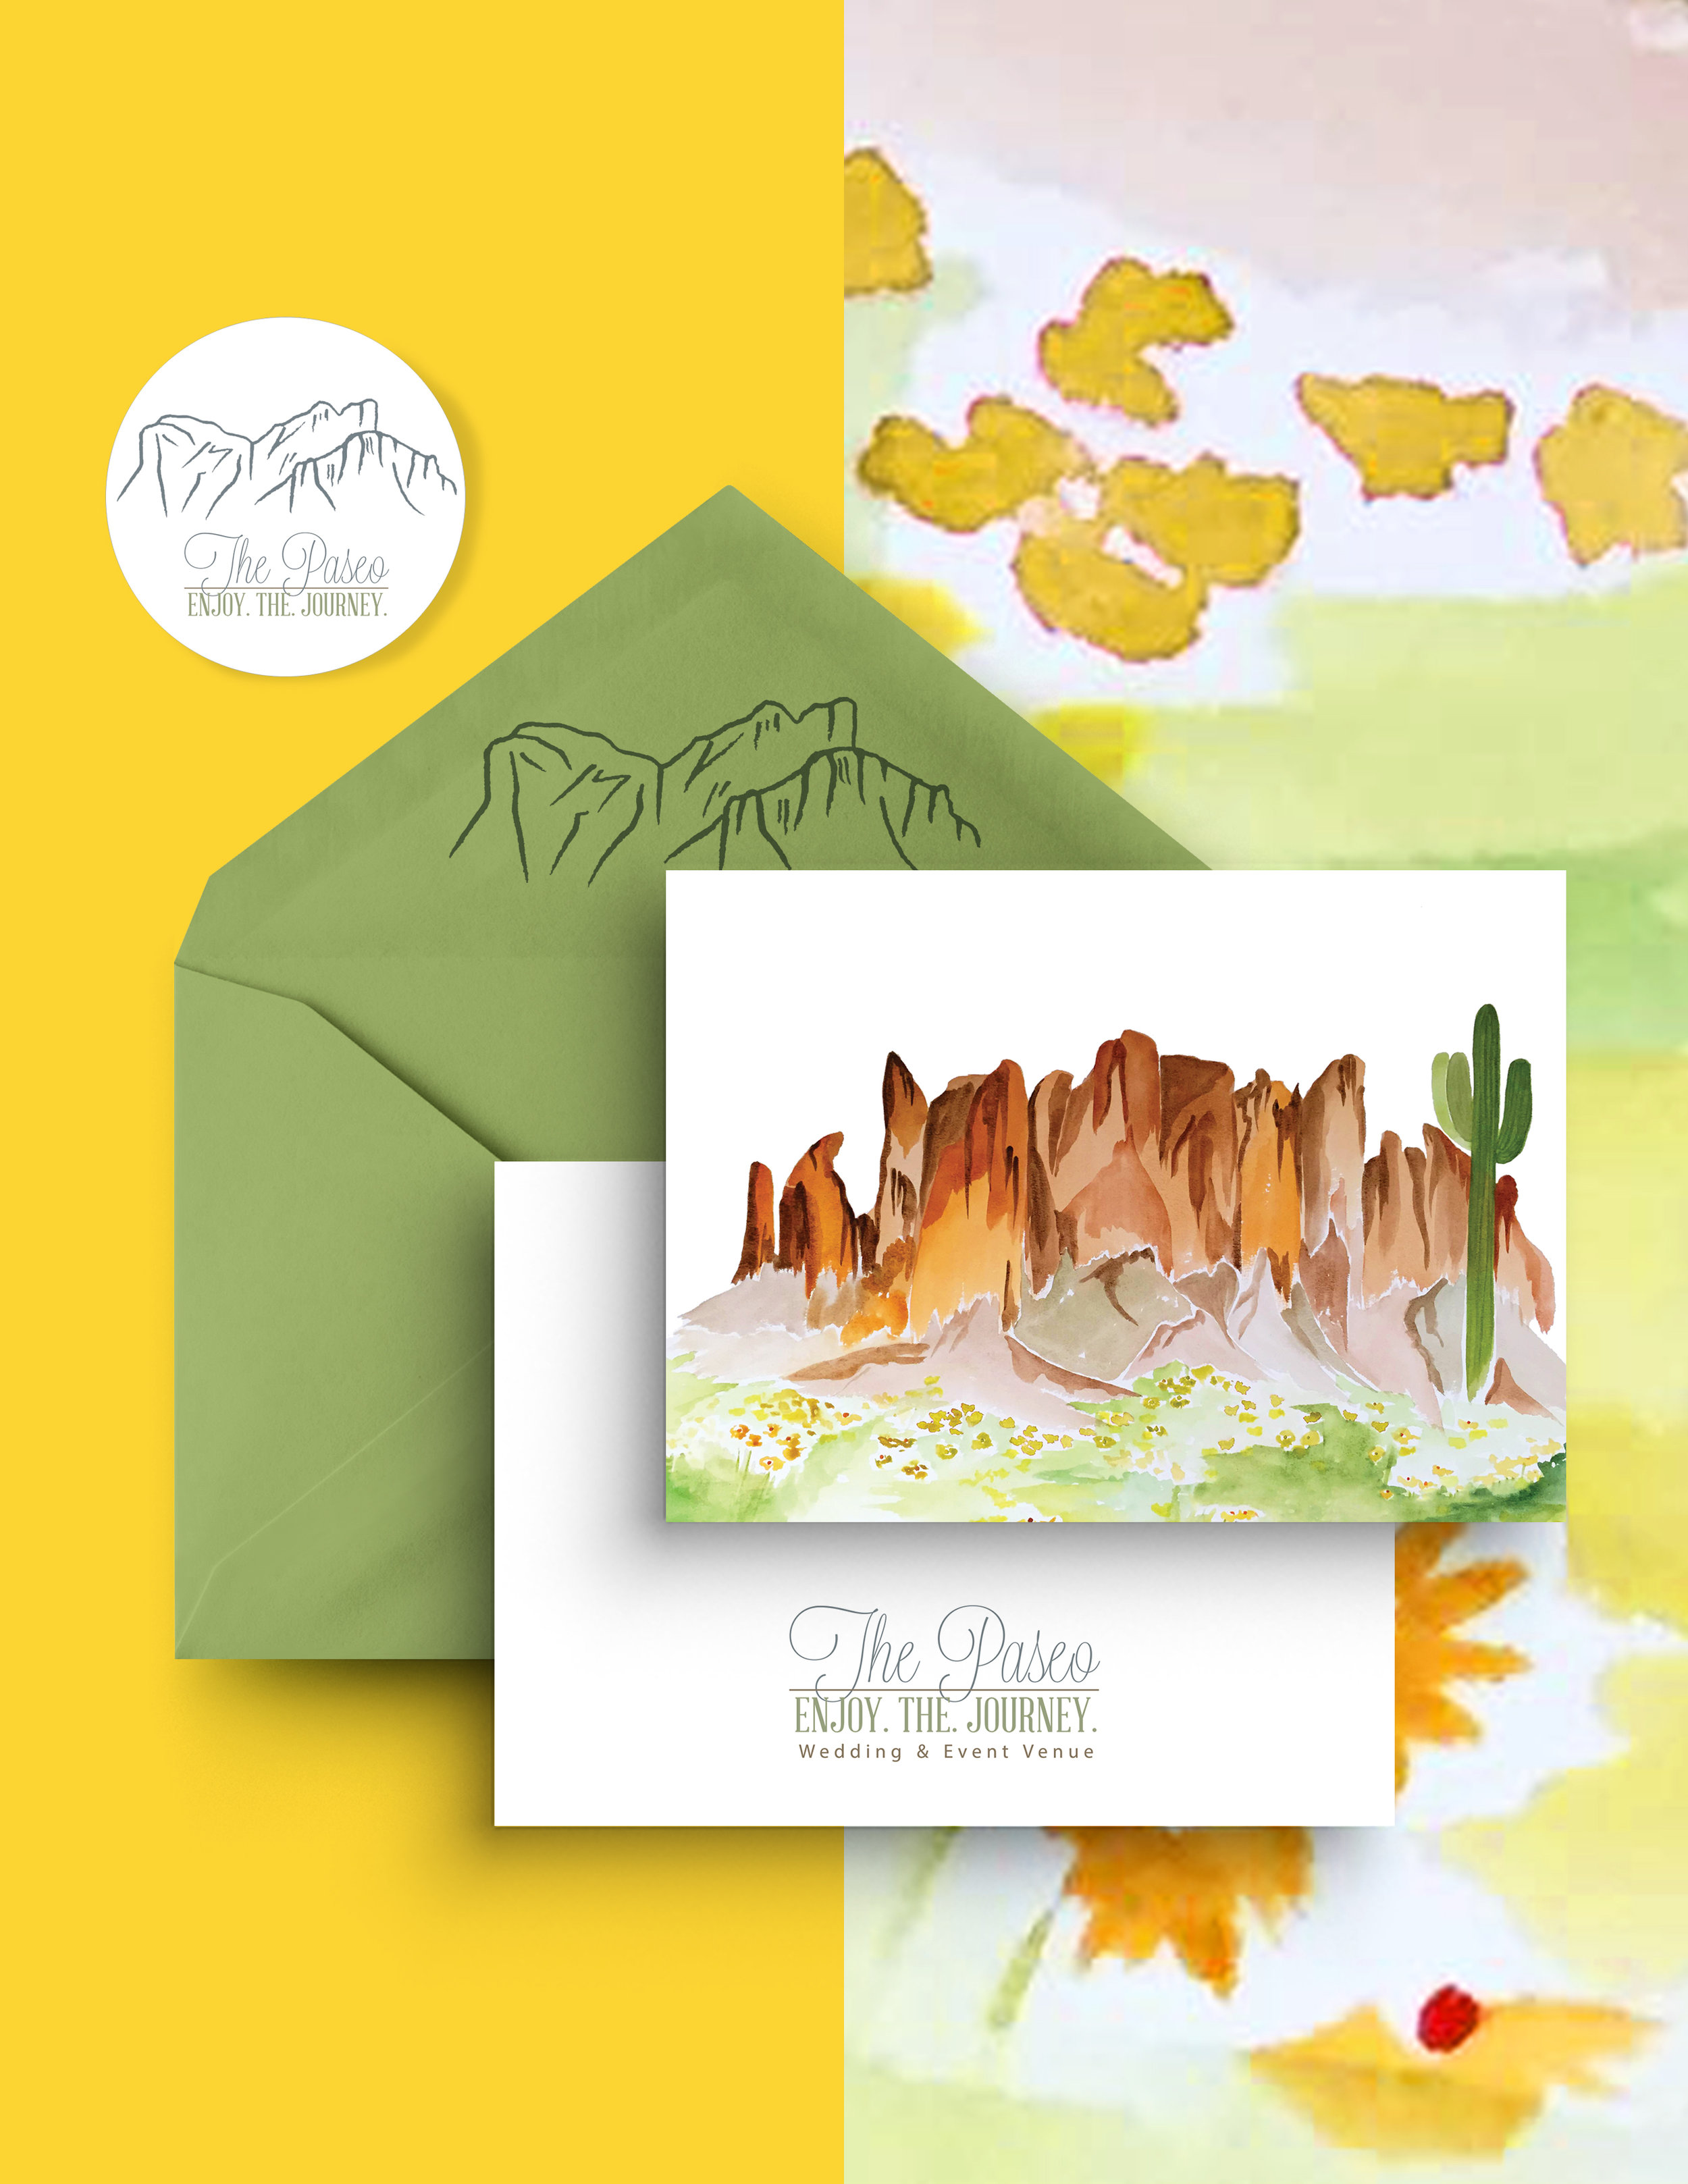 The Paseo: Wedding & Event Venue   Custom illustration for stickers & apparel, and custom stationery design